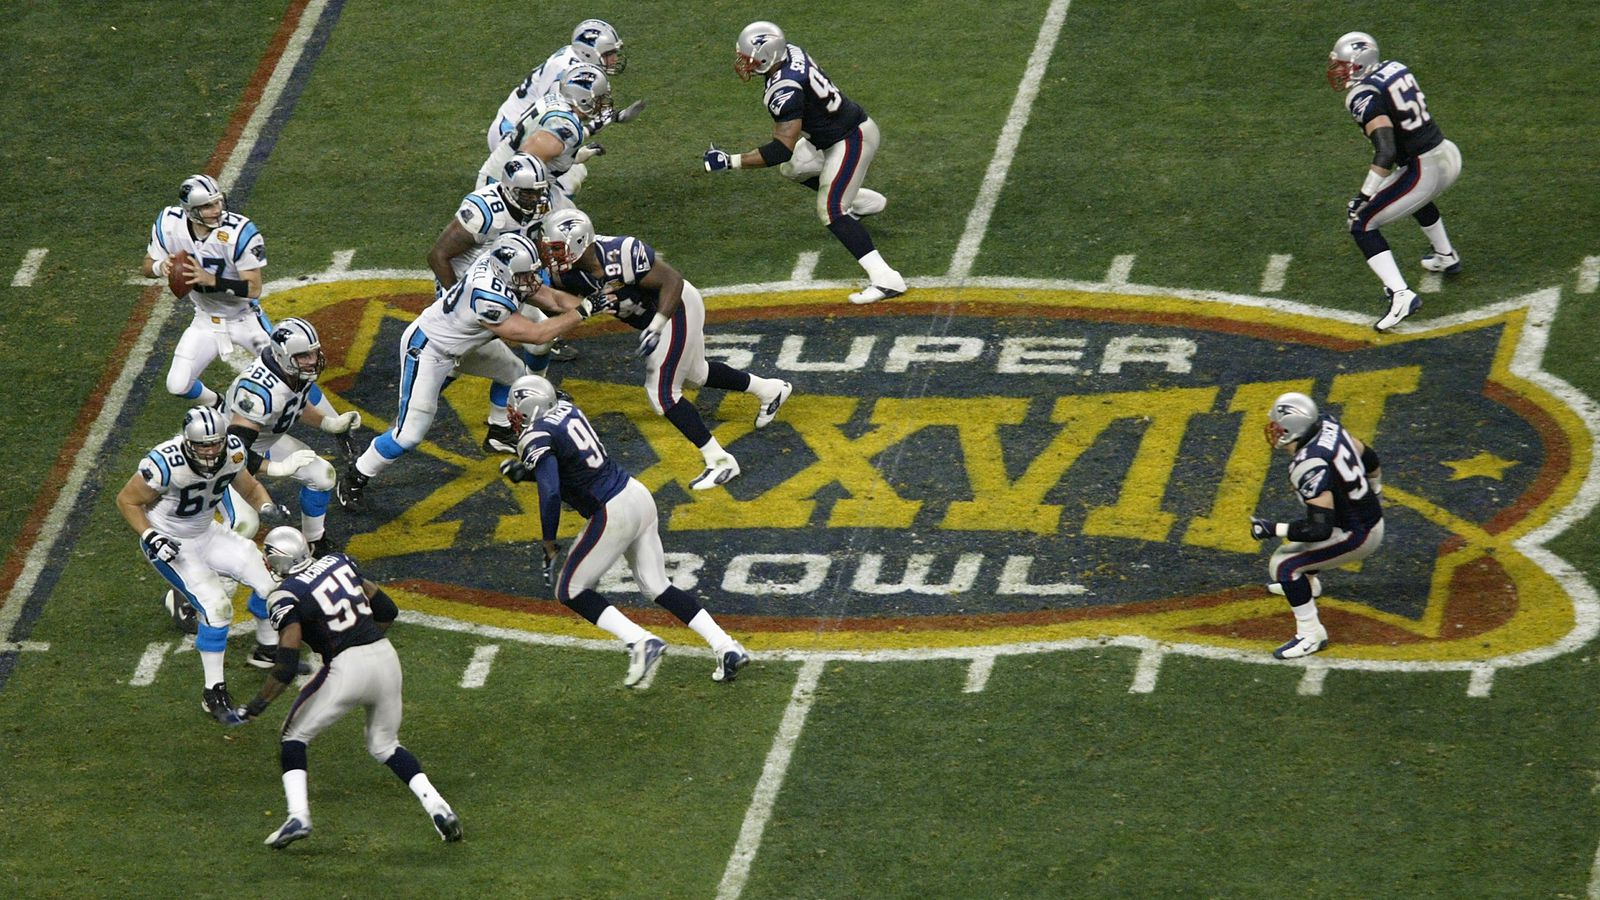 The Nfl Ditched Roman Numerals For Super Bowl 50 After 49